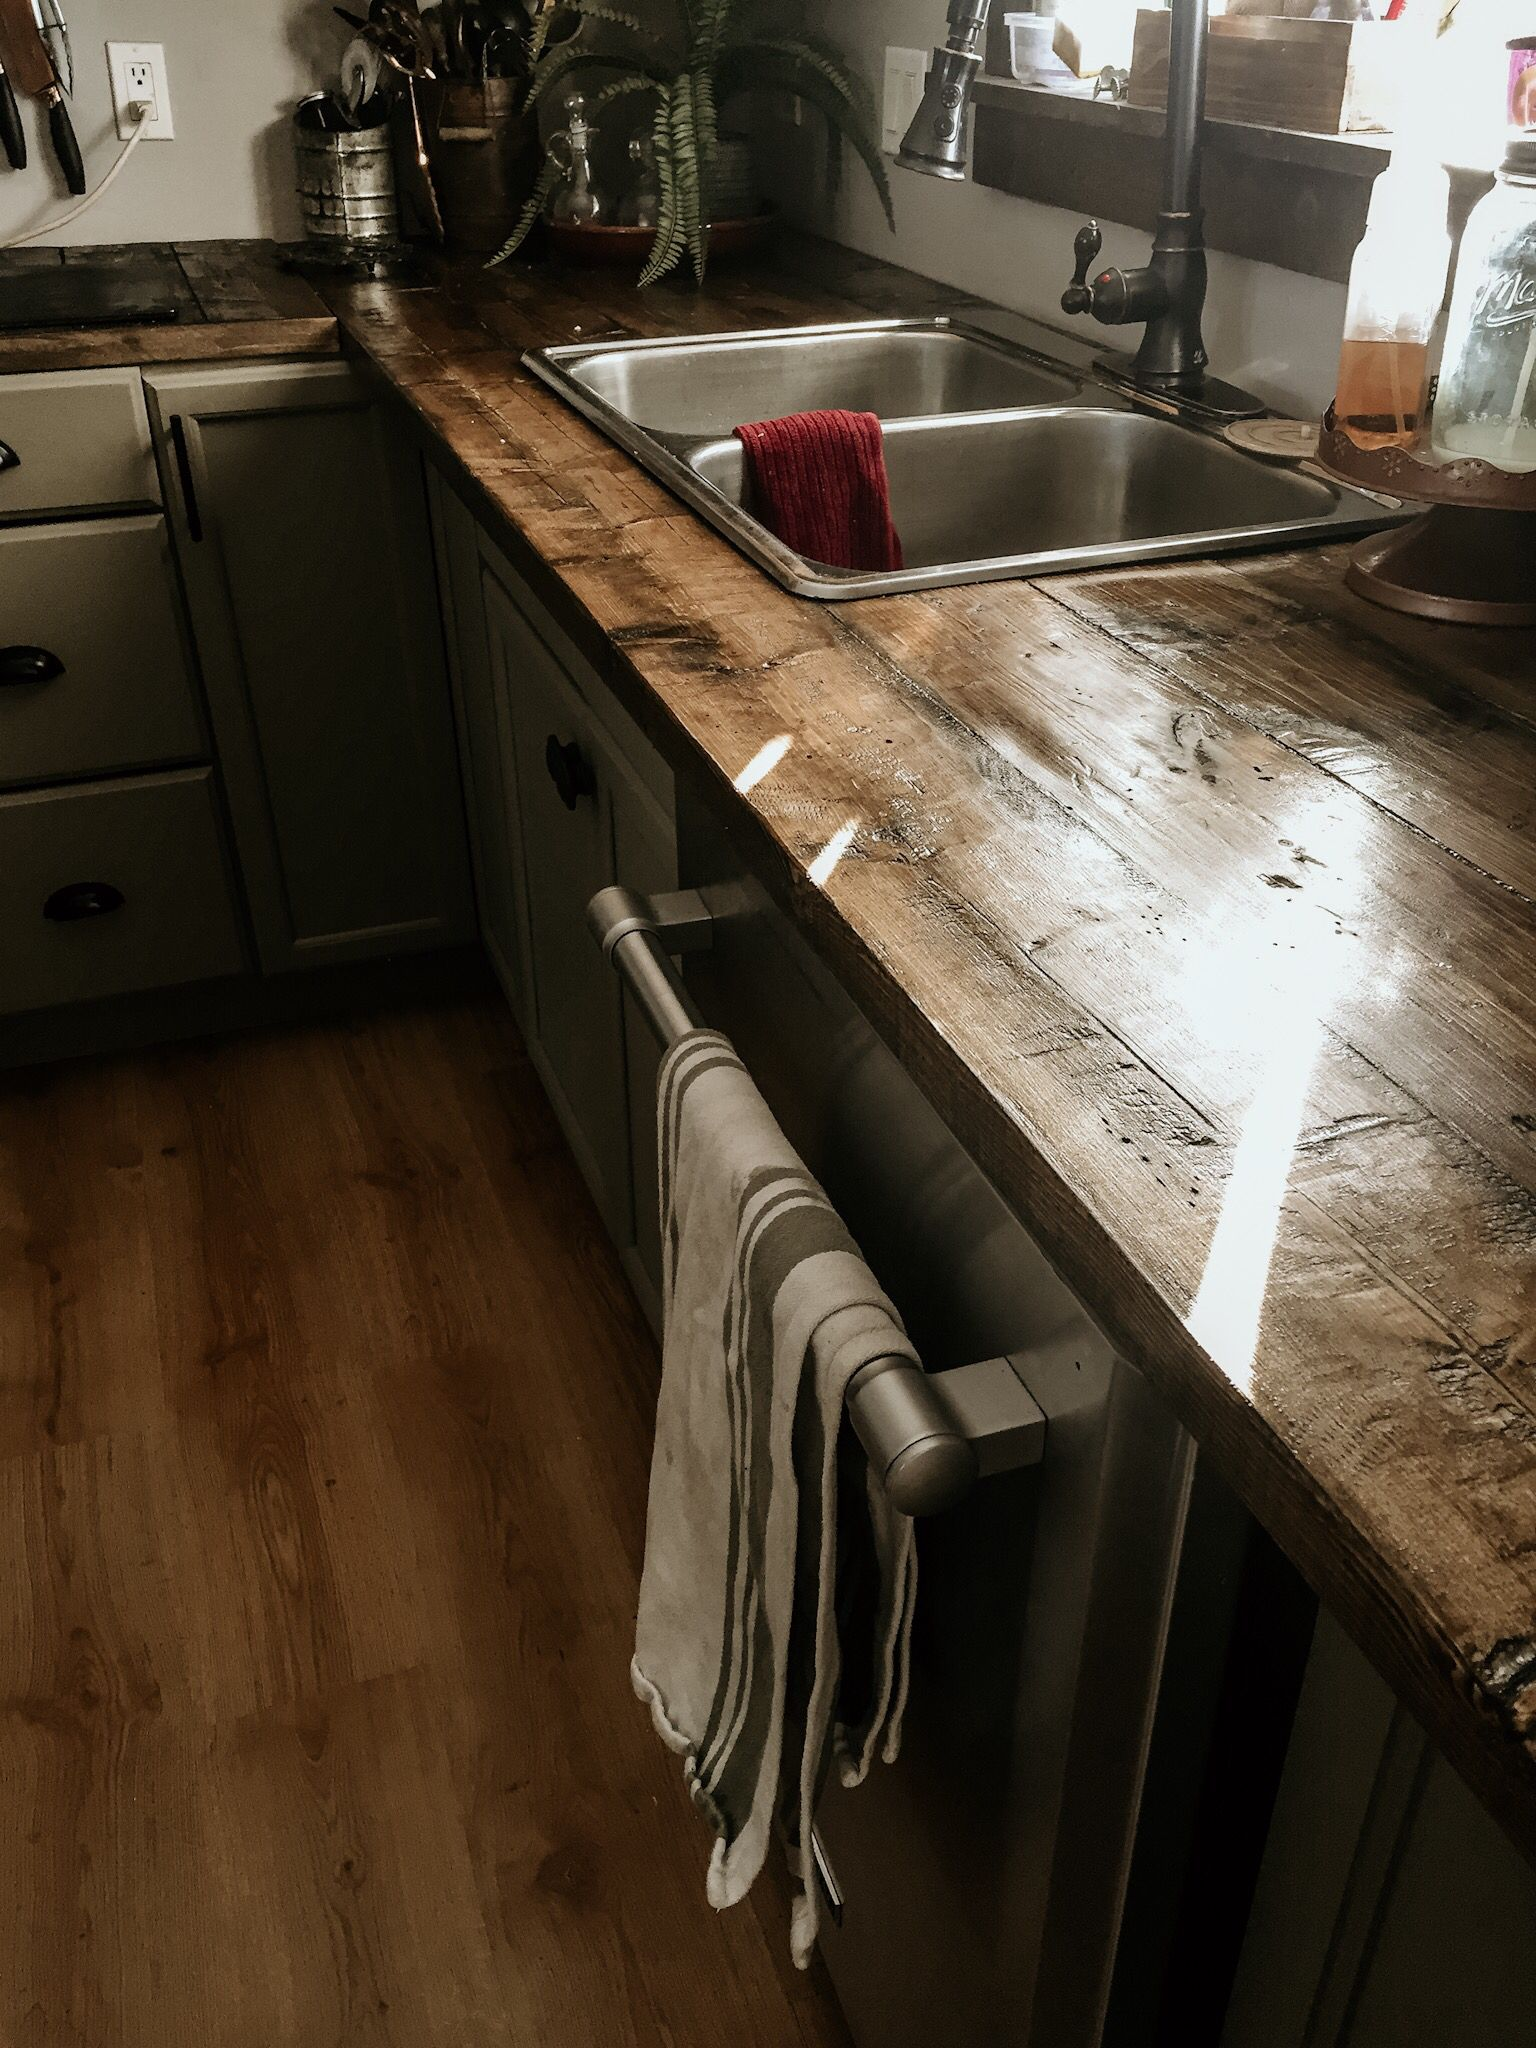 Rustic Diy Countertop For 50 In Wood And Under 100 In Supplies